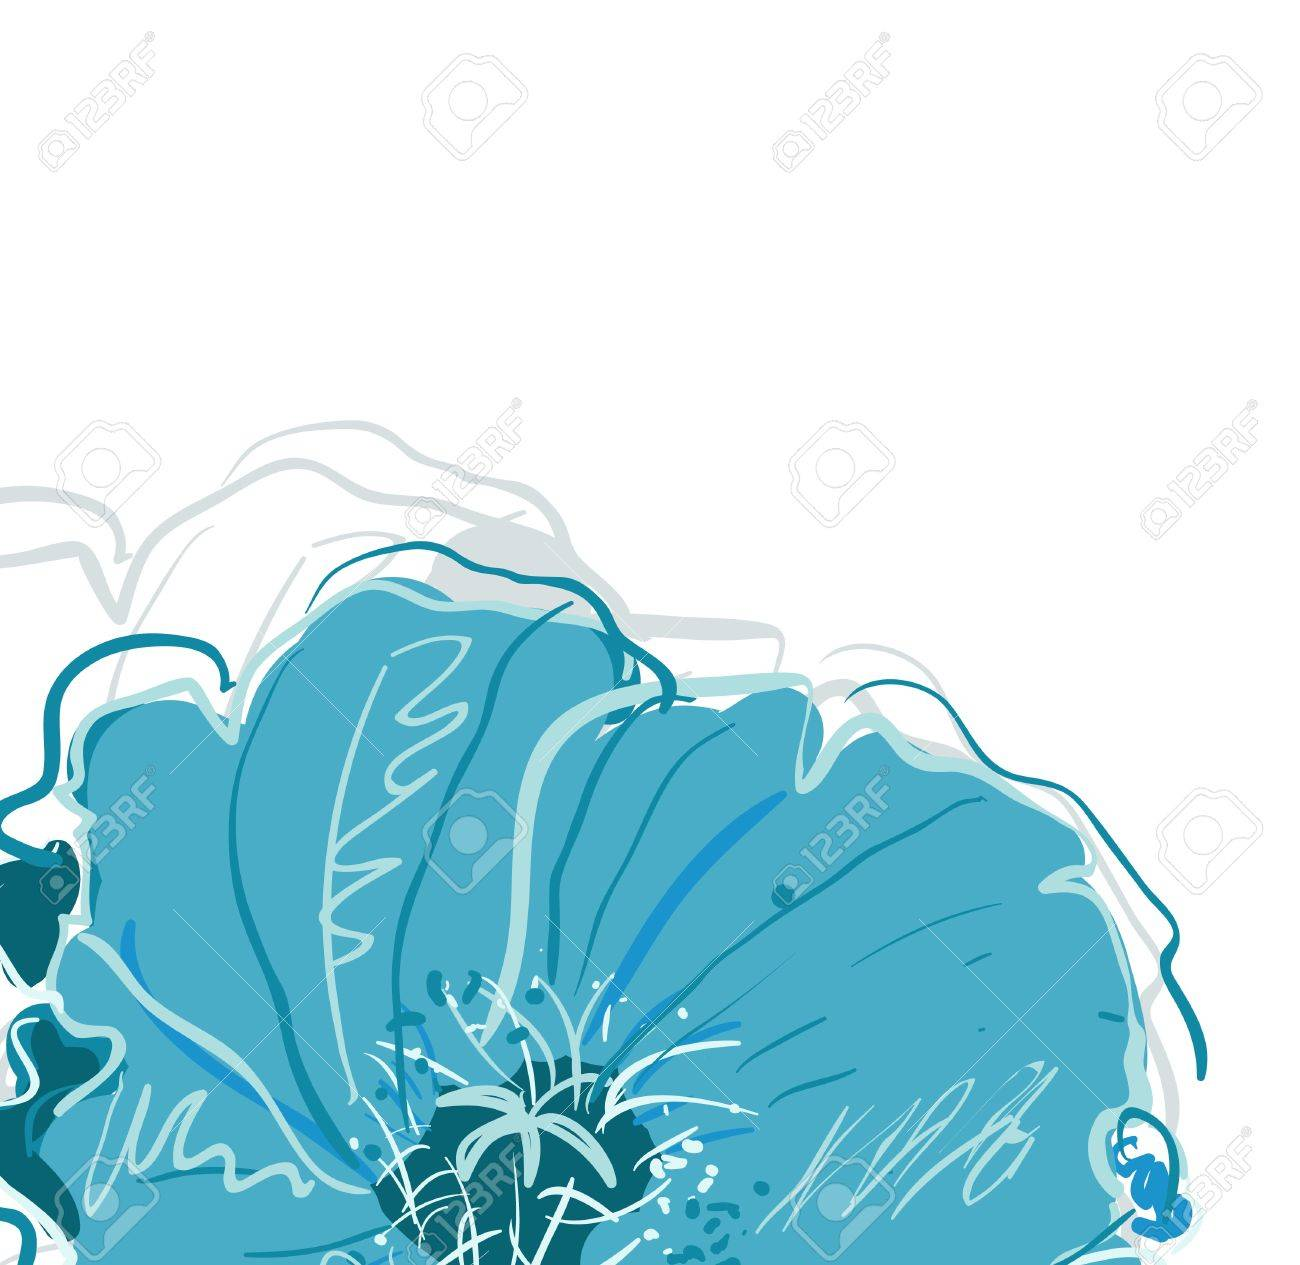 Abstract elegance vector background with blue flowers Stock Vector - 9640614